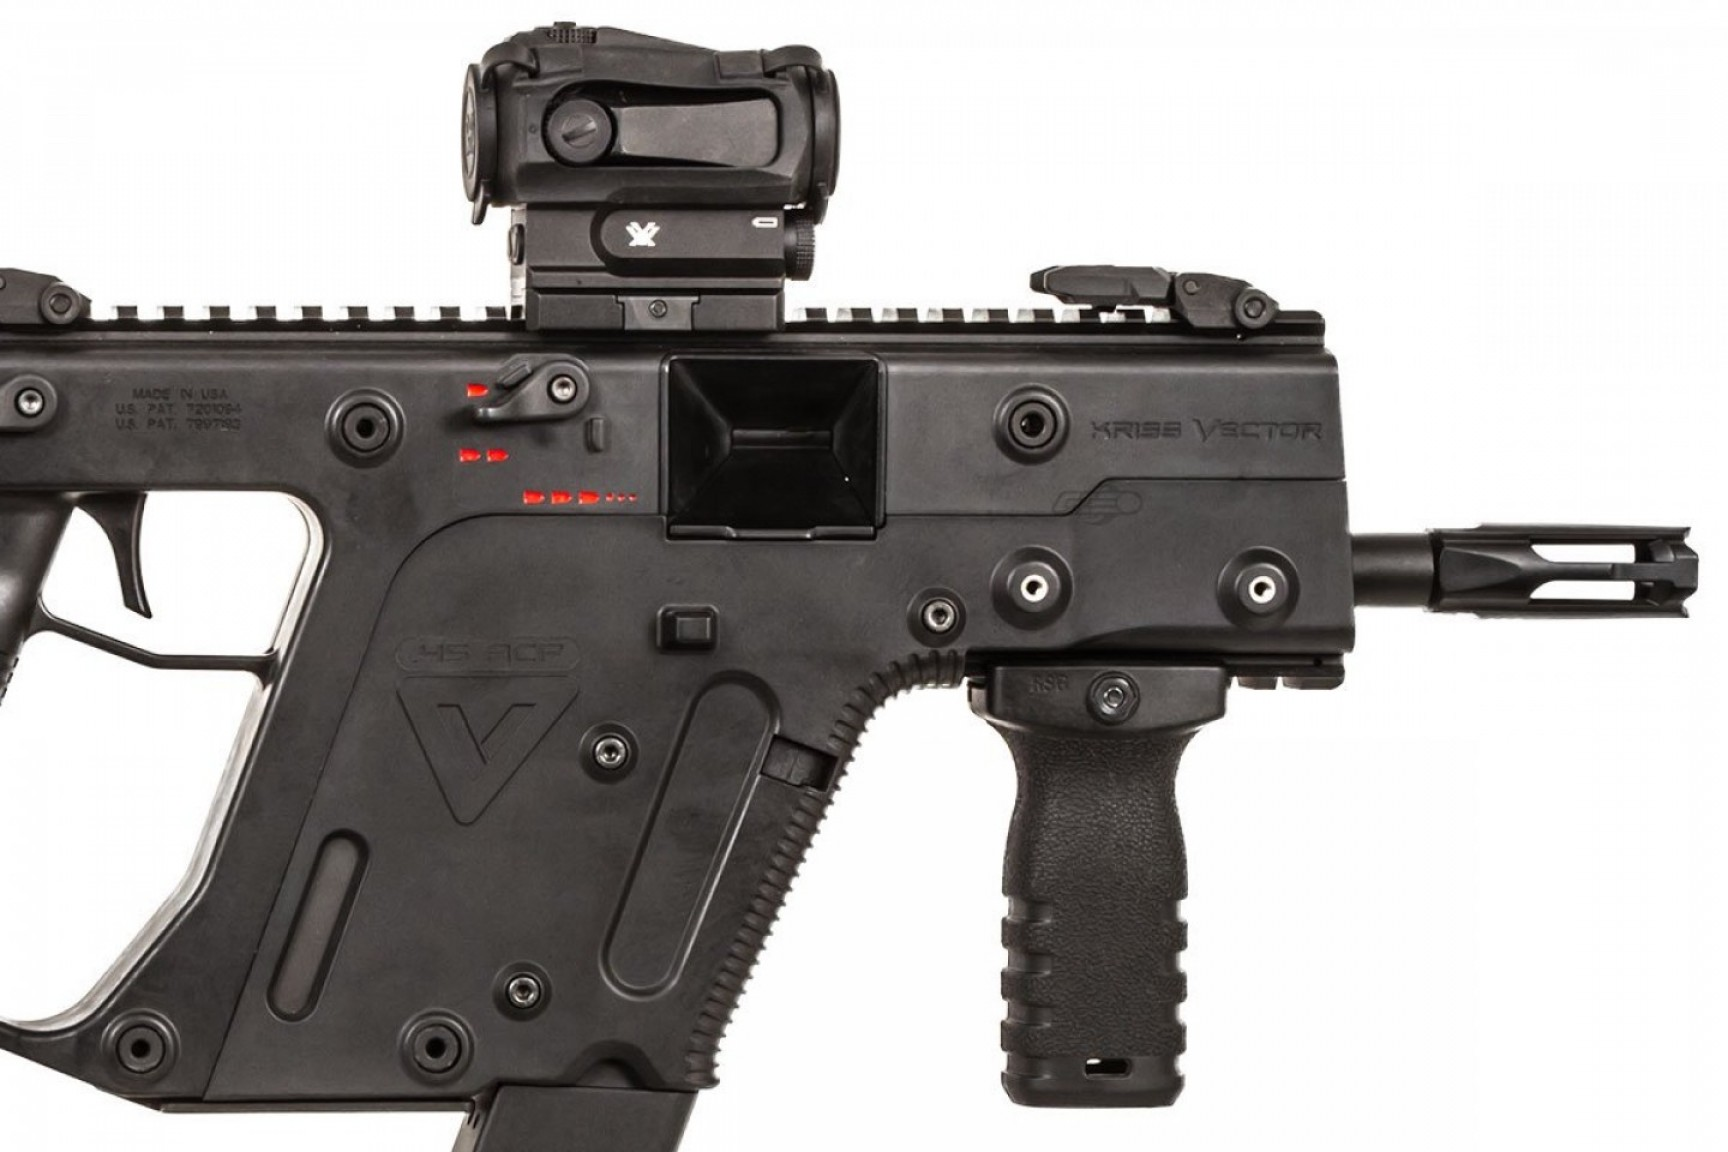 Kriss vector clipart stock Kriss Vector Parts And Accessories   SOIDERGI stock